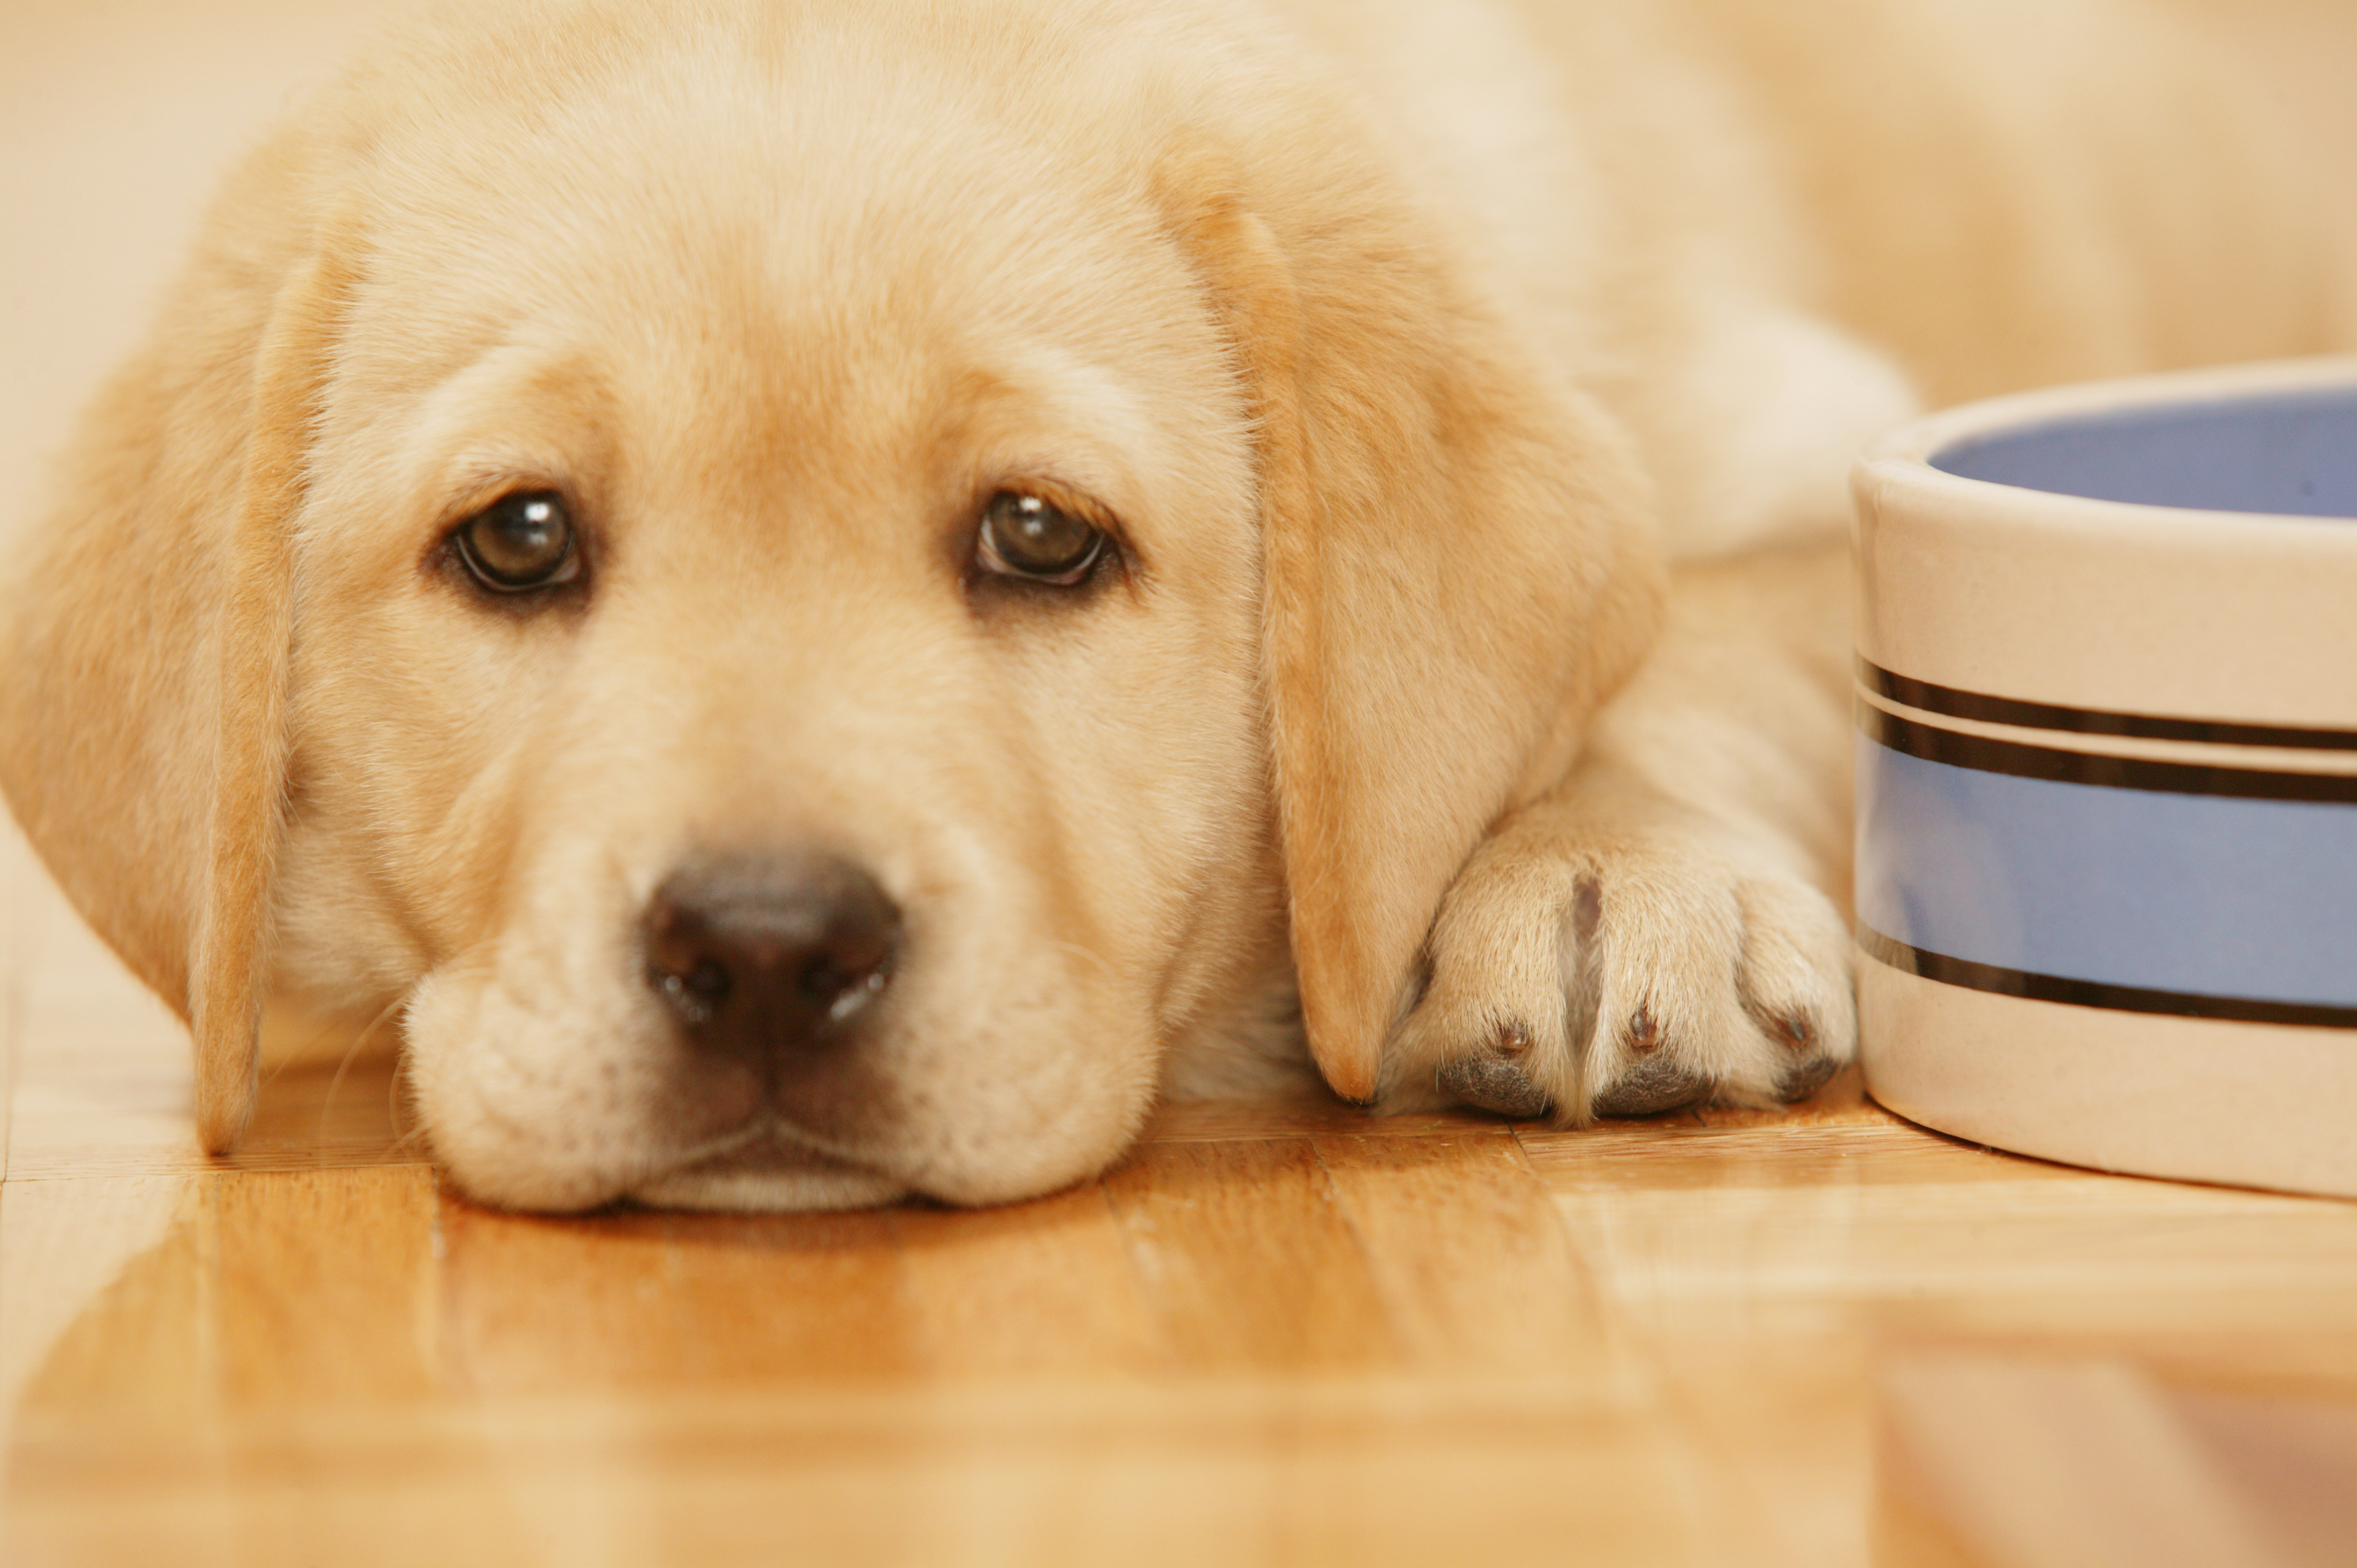 When Can Puppies Eat Dry Food